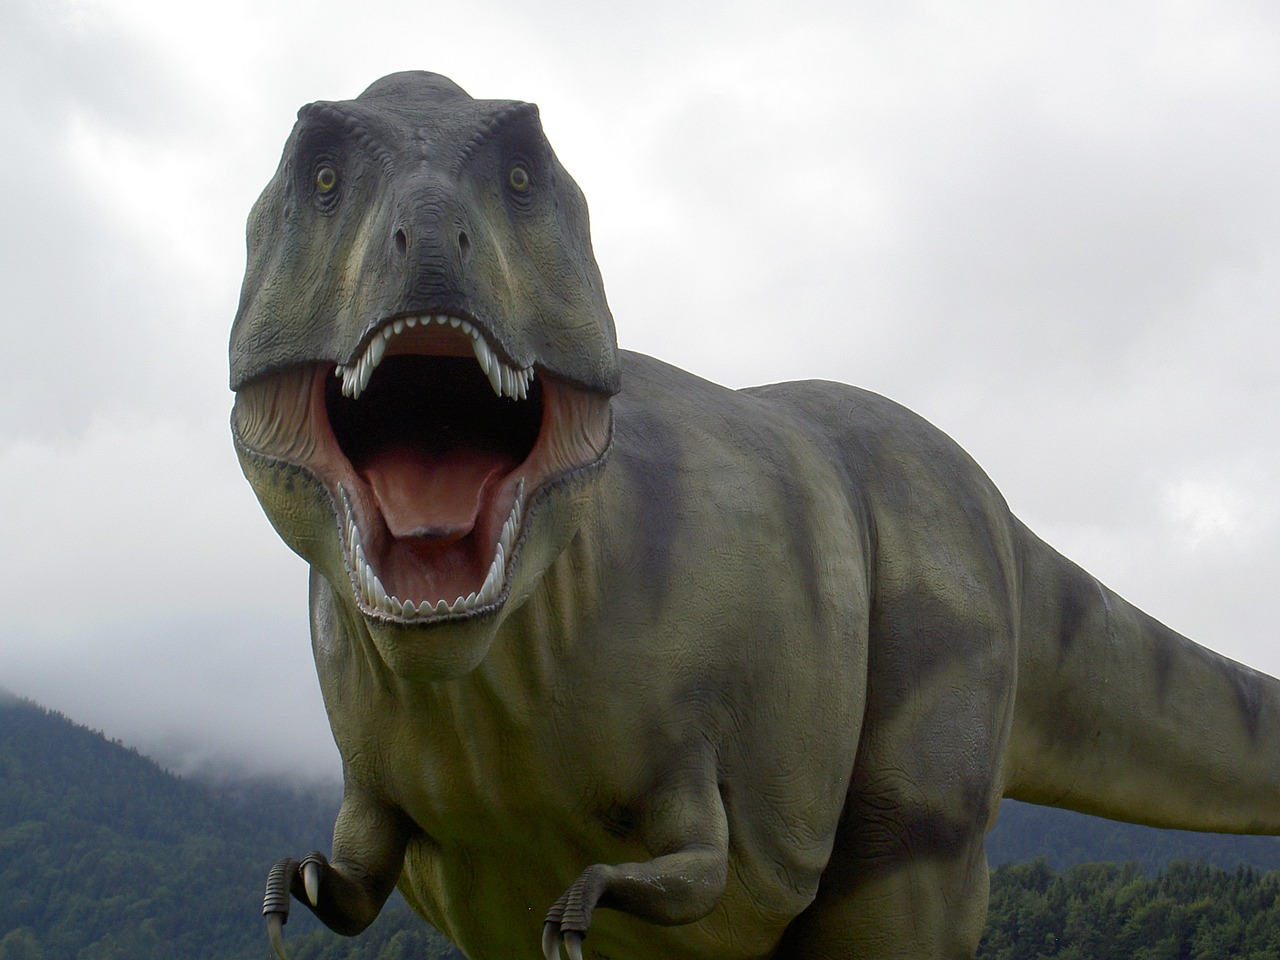 Chances are, you're pretty familiar with the T. Rex. But how much do you really know about them?